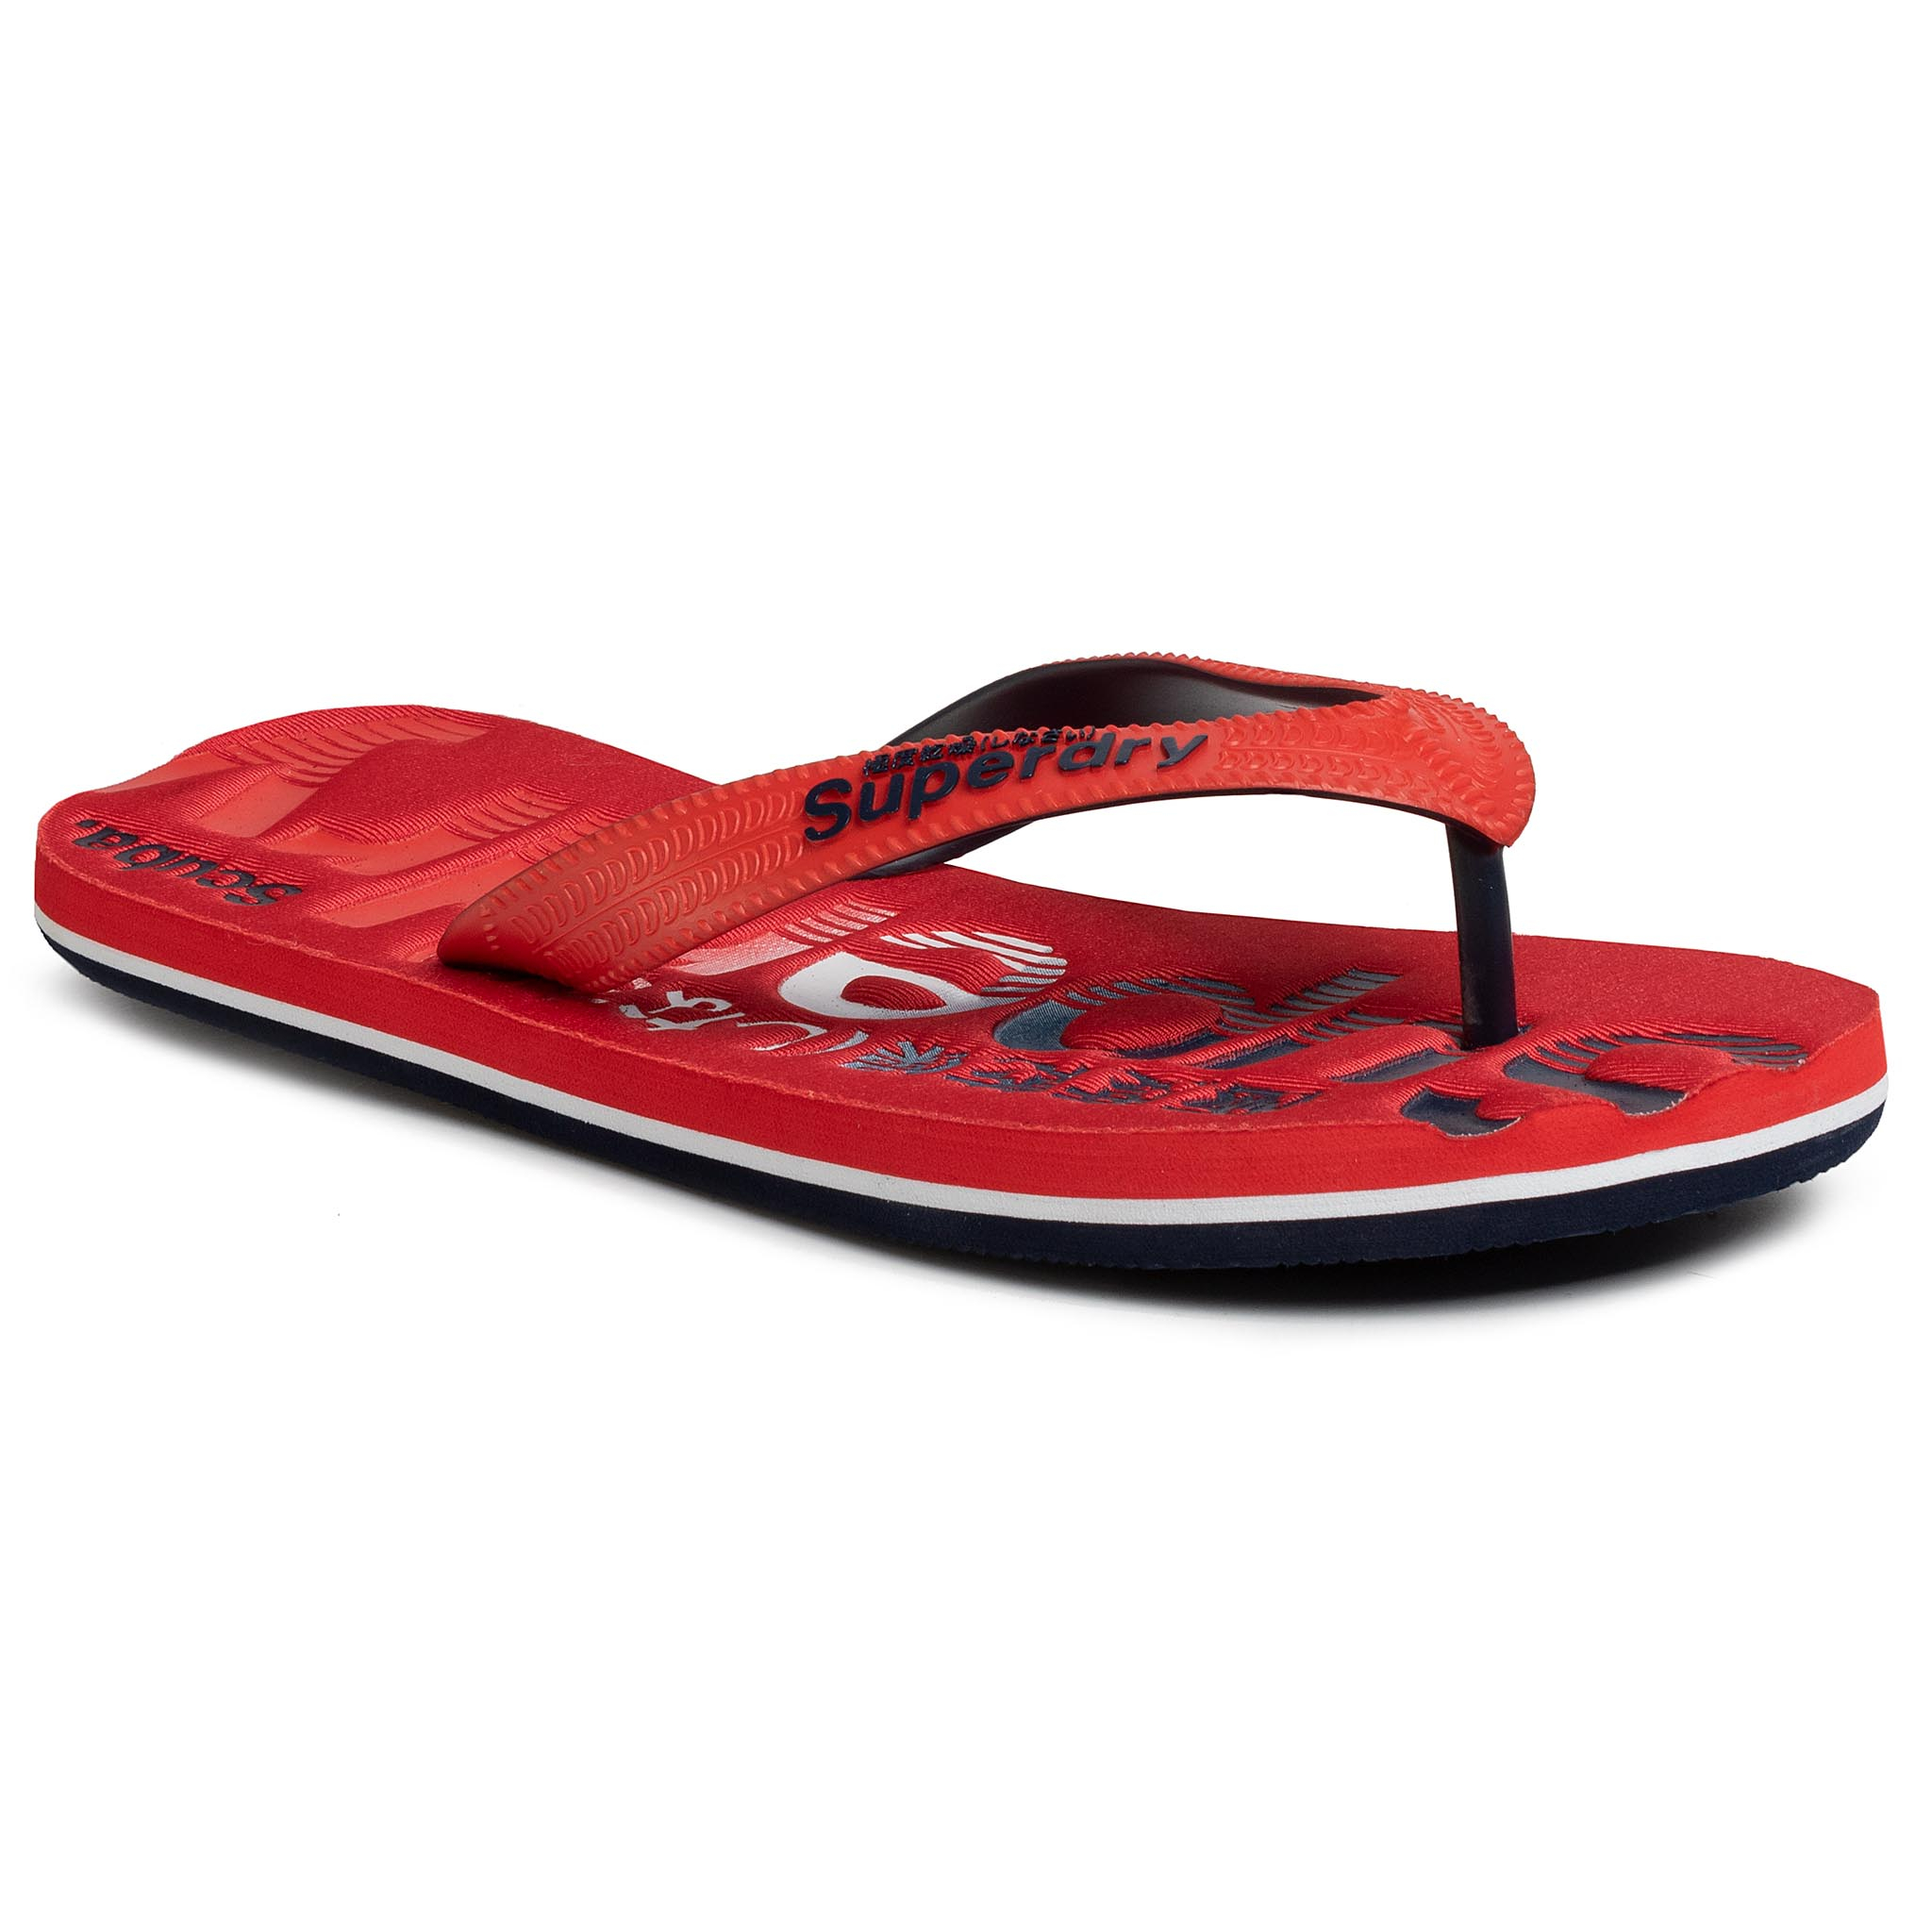 Tongs SUPERDRY - Classic Scuba Flip Flop MF310034A  Red 17I